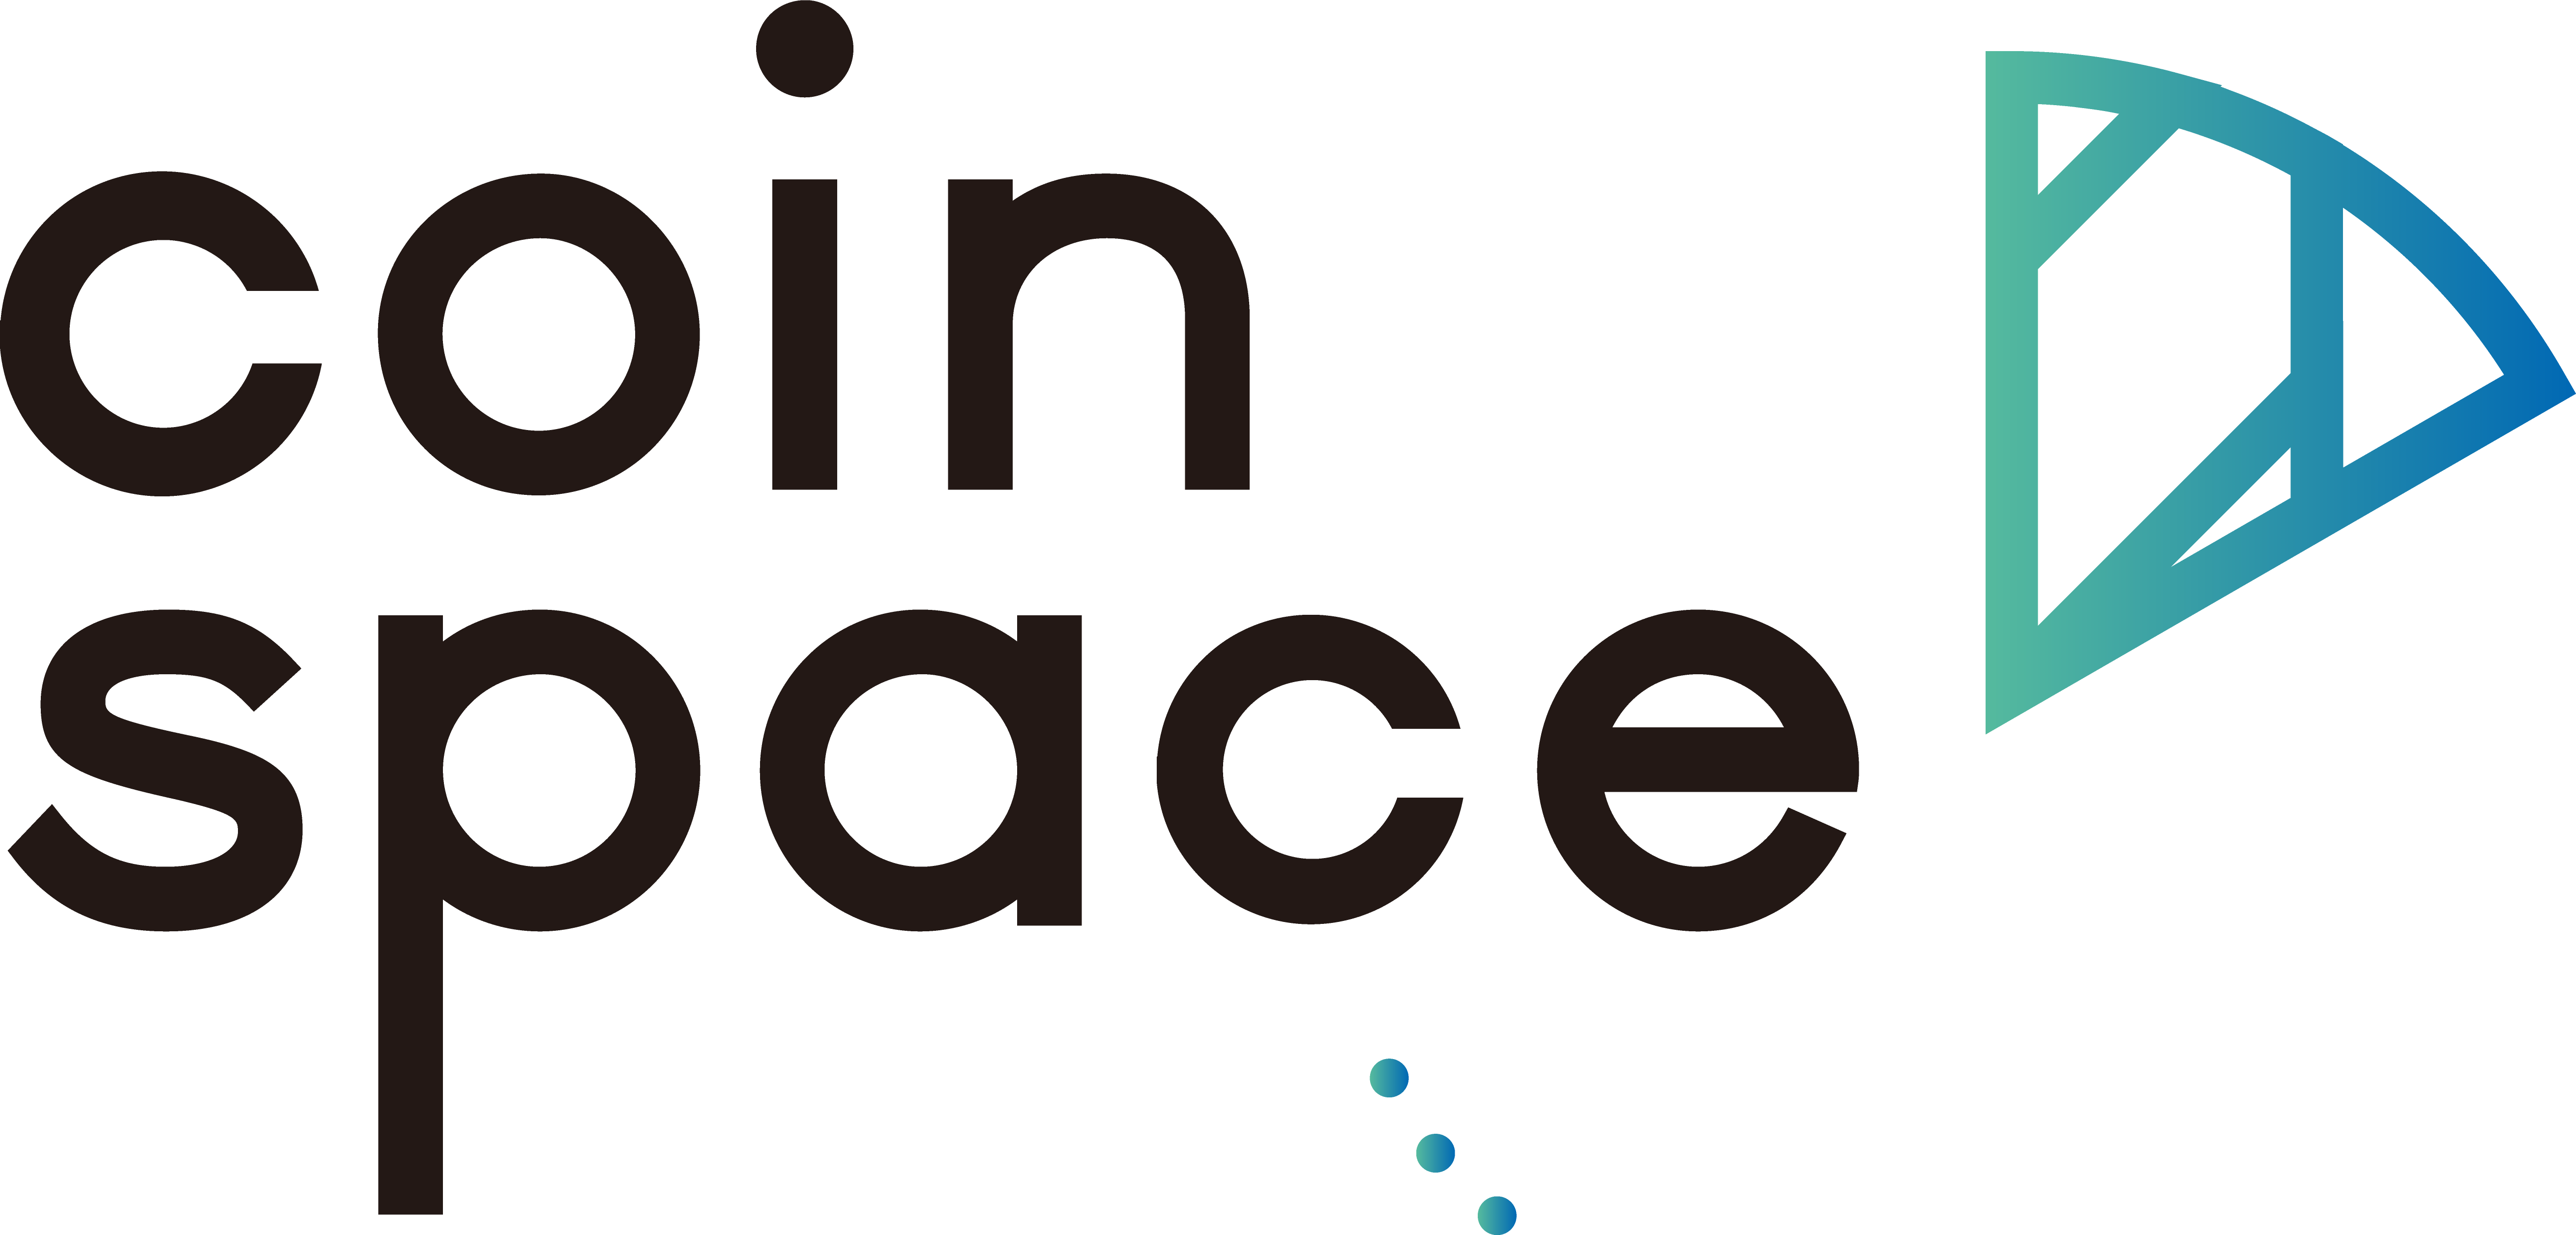 coin space